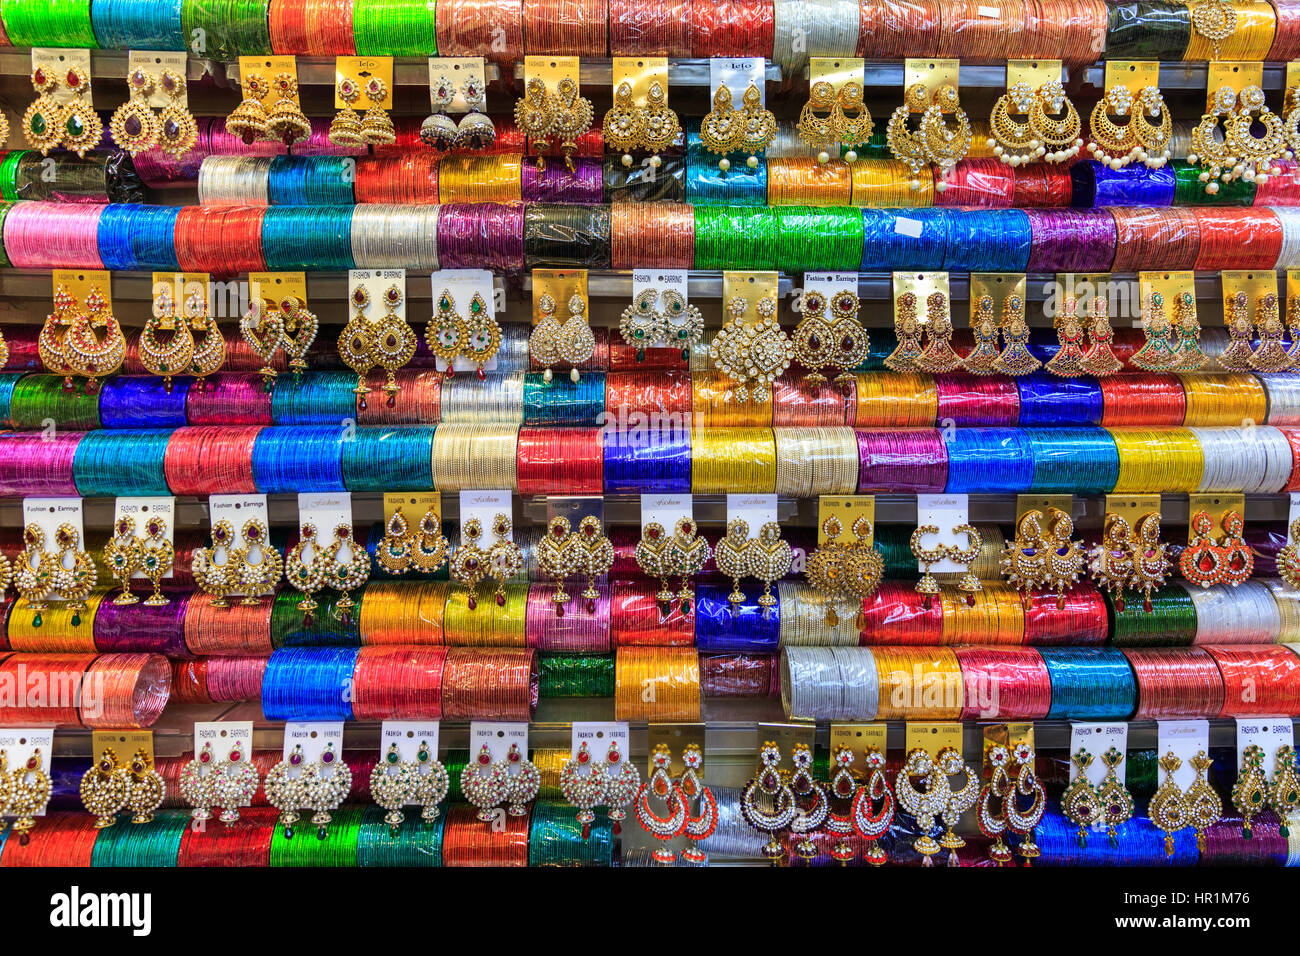 Colourful Indian bangles, earrings and jewellery on display Stock Photo